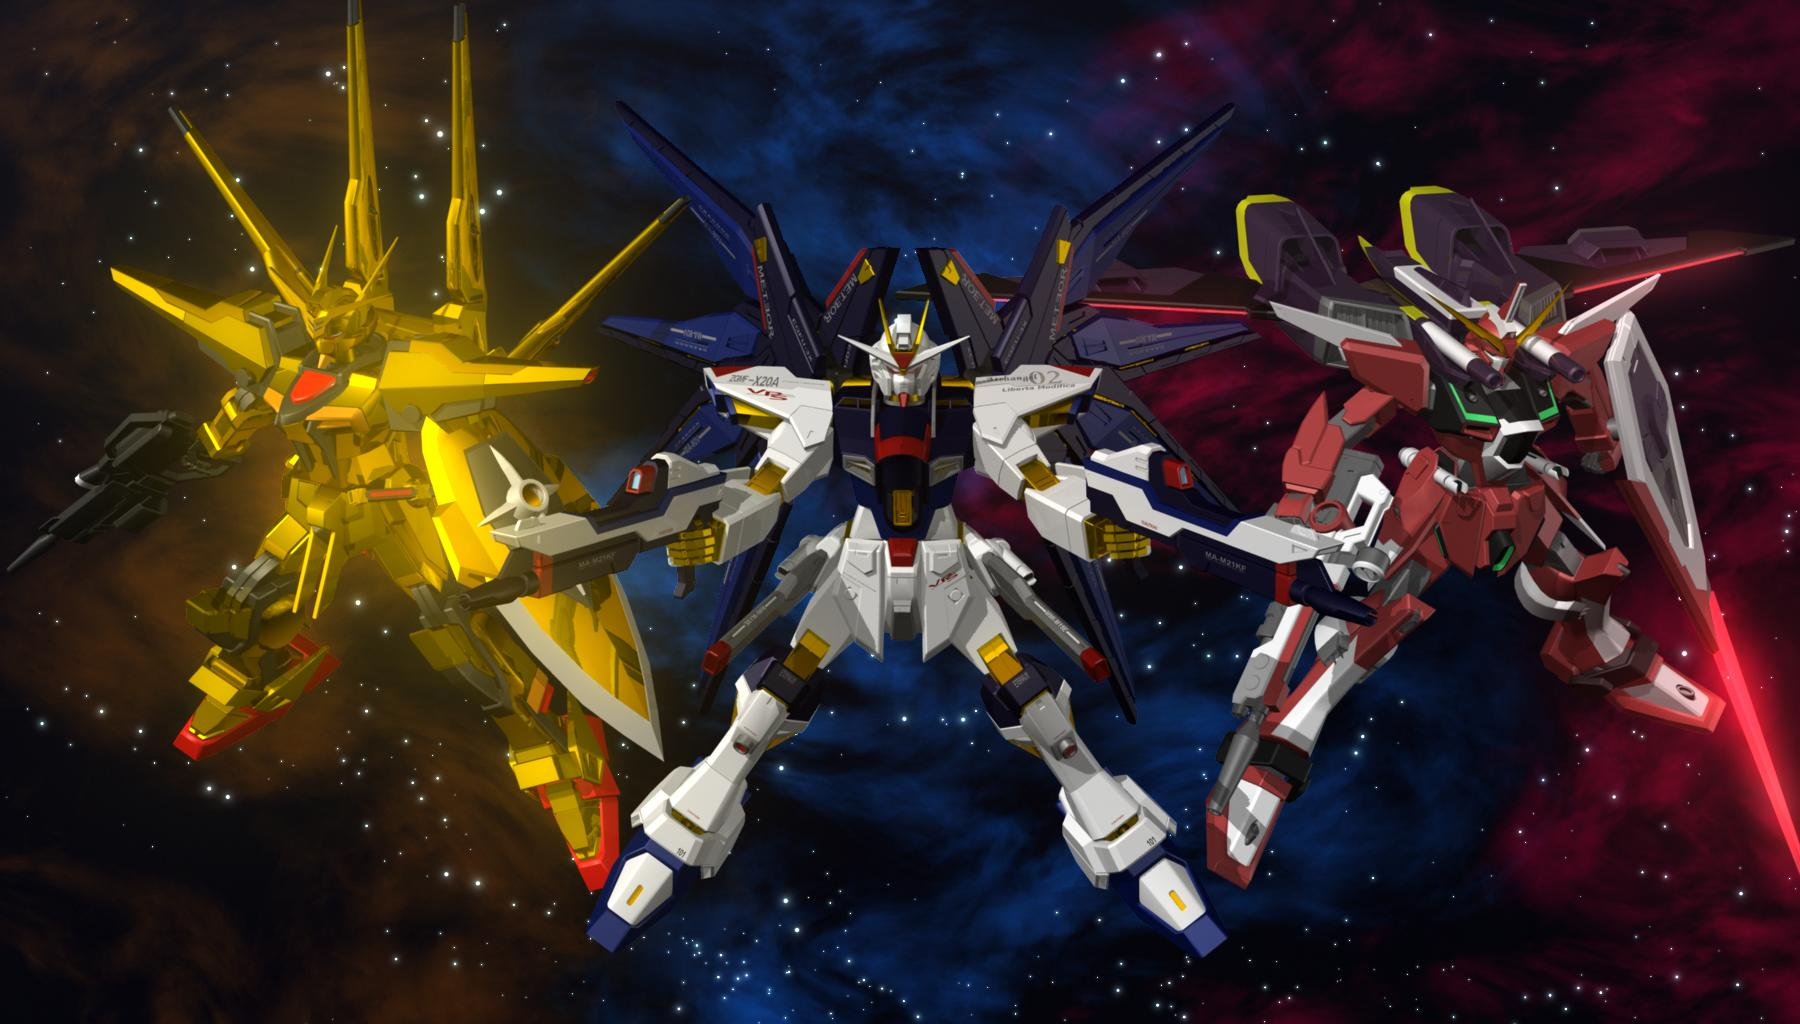 Gundam freedom and justice